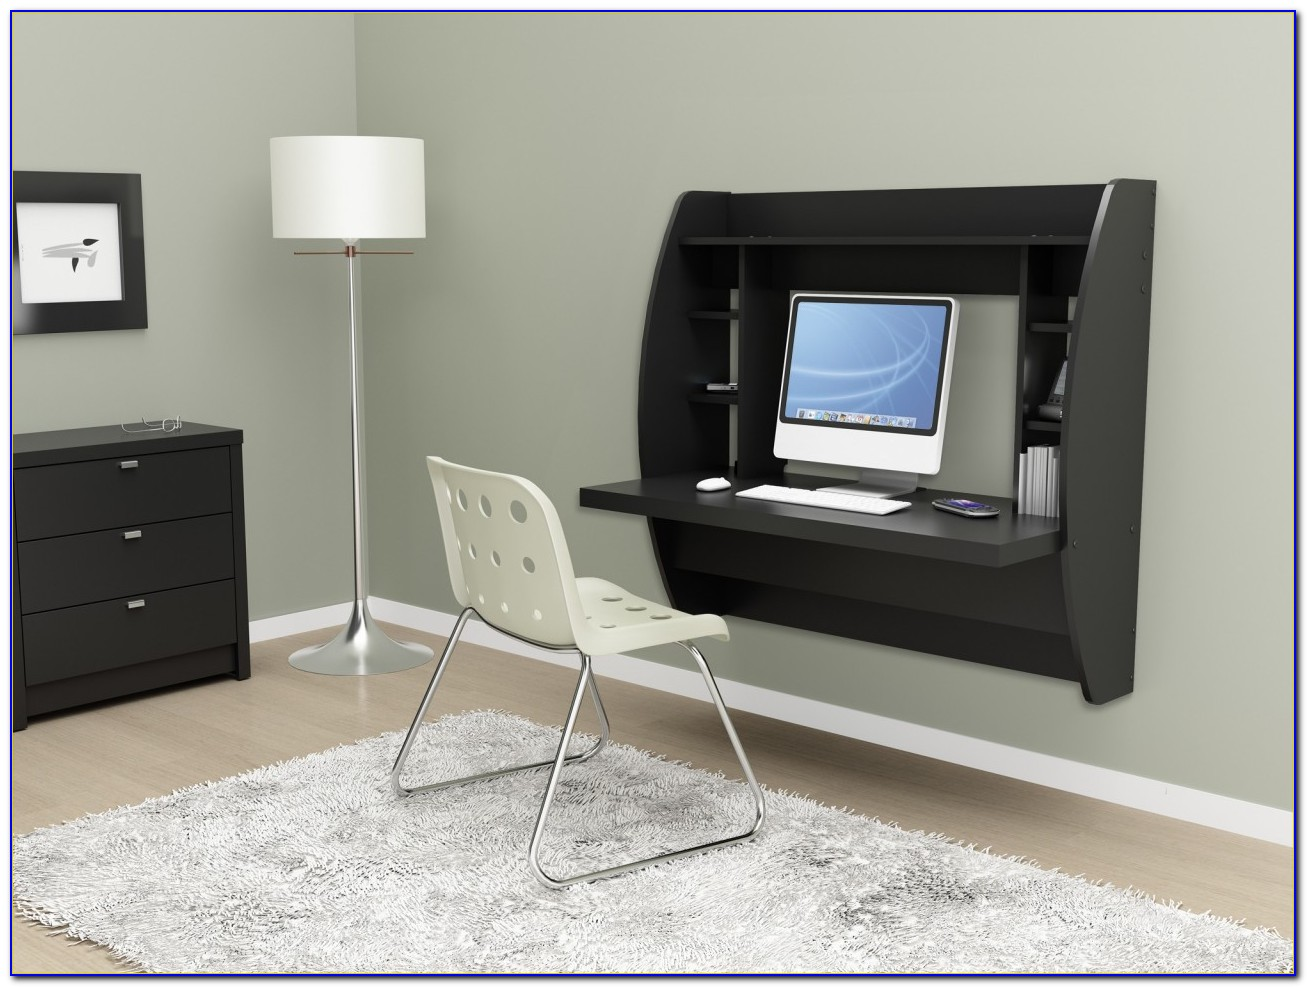 Wall Mounted Computer Desk Staples Desk Home Design